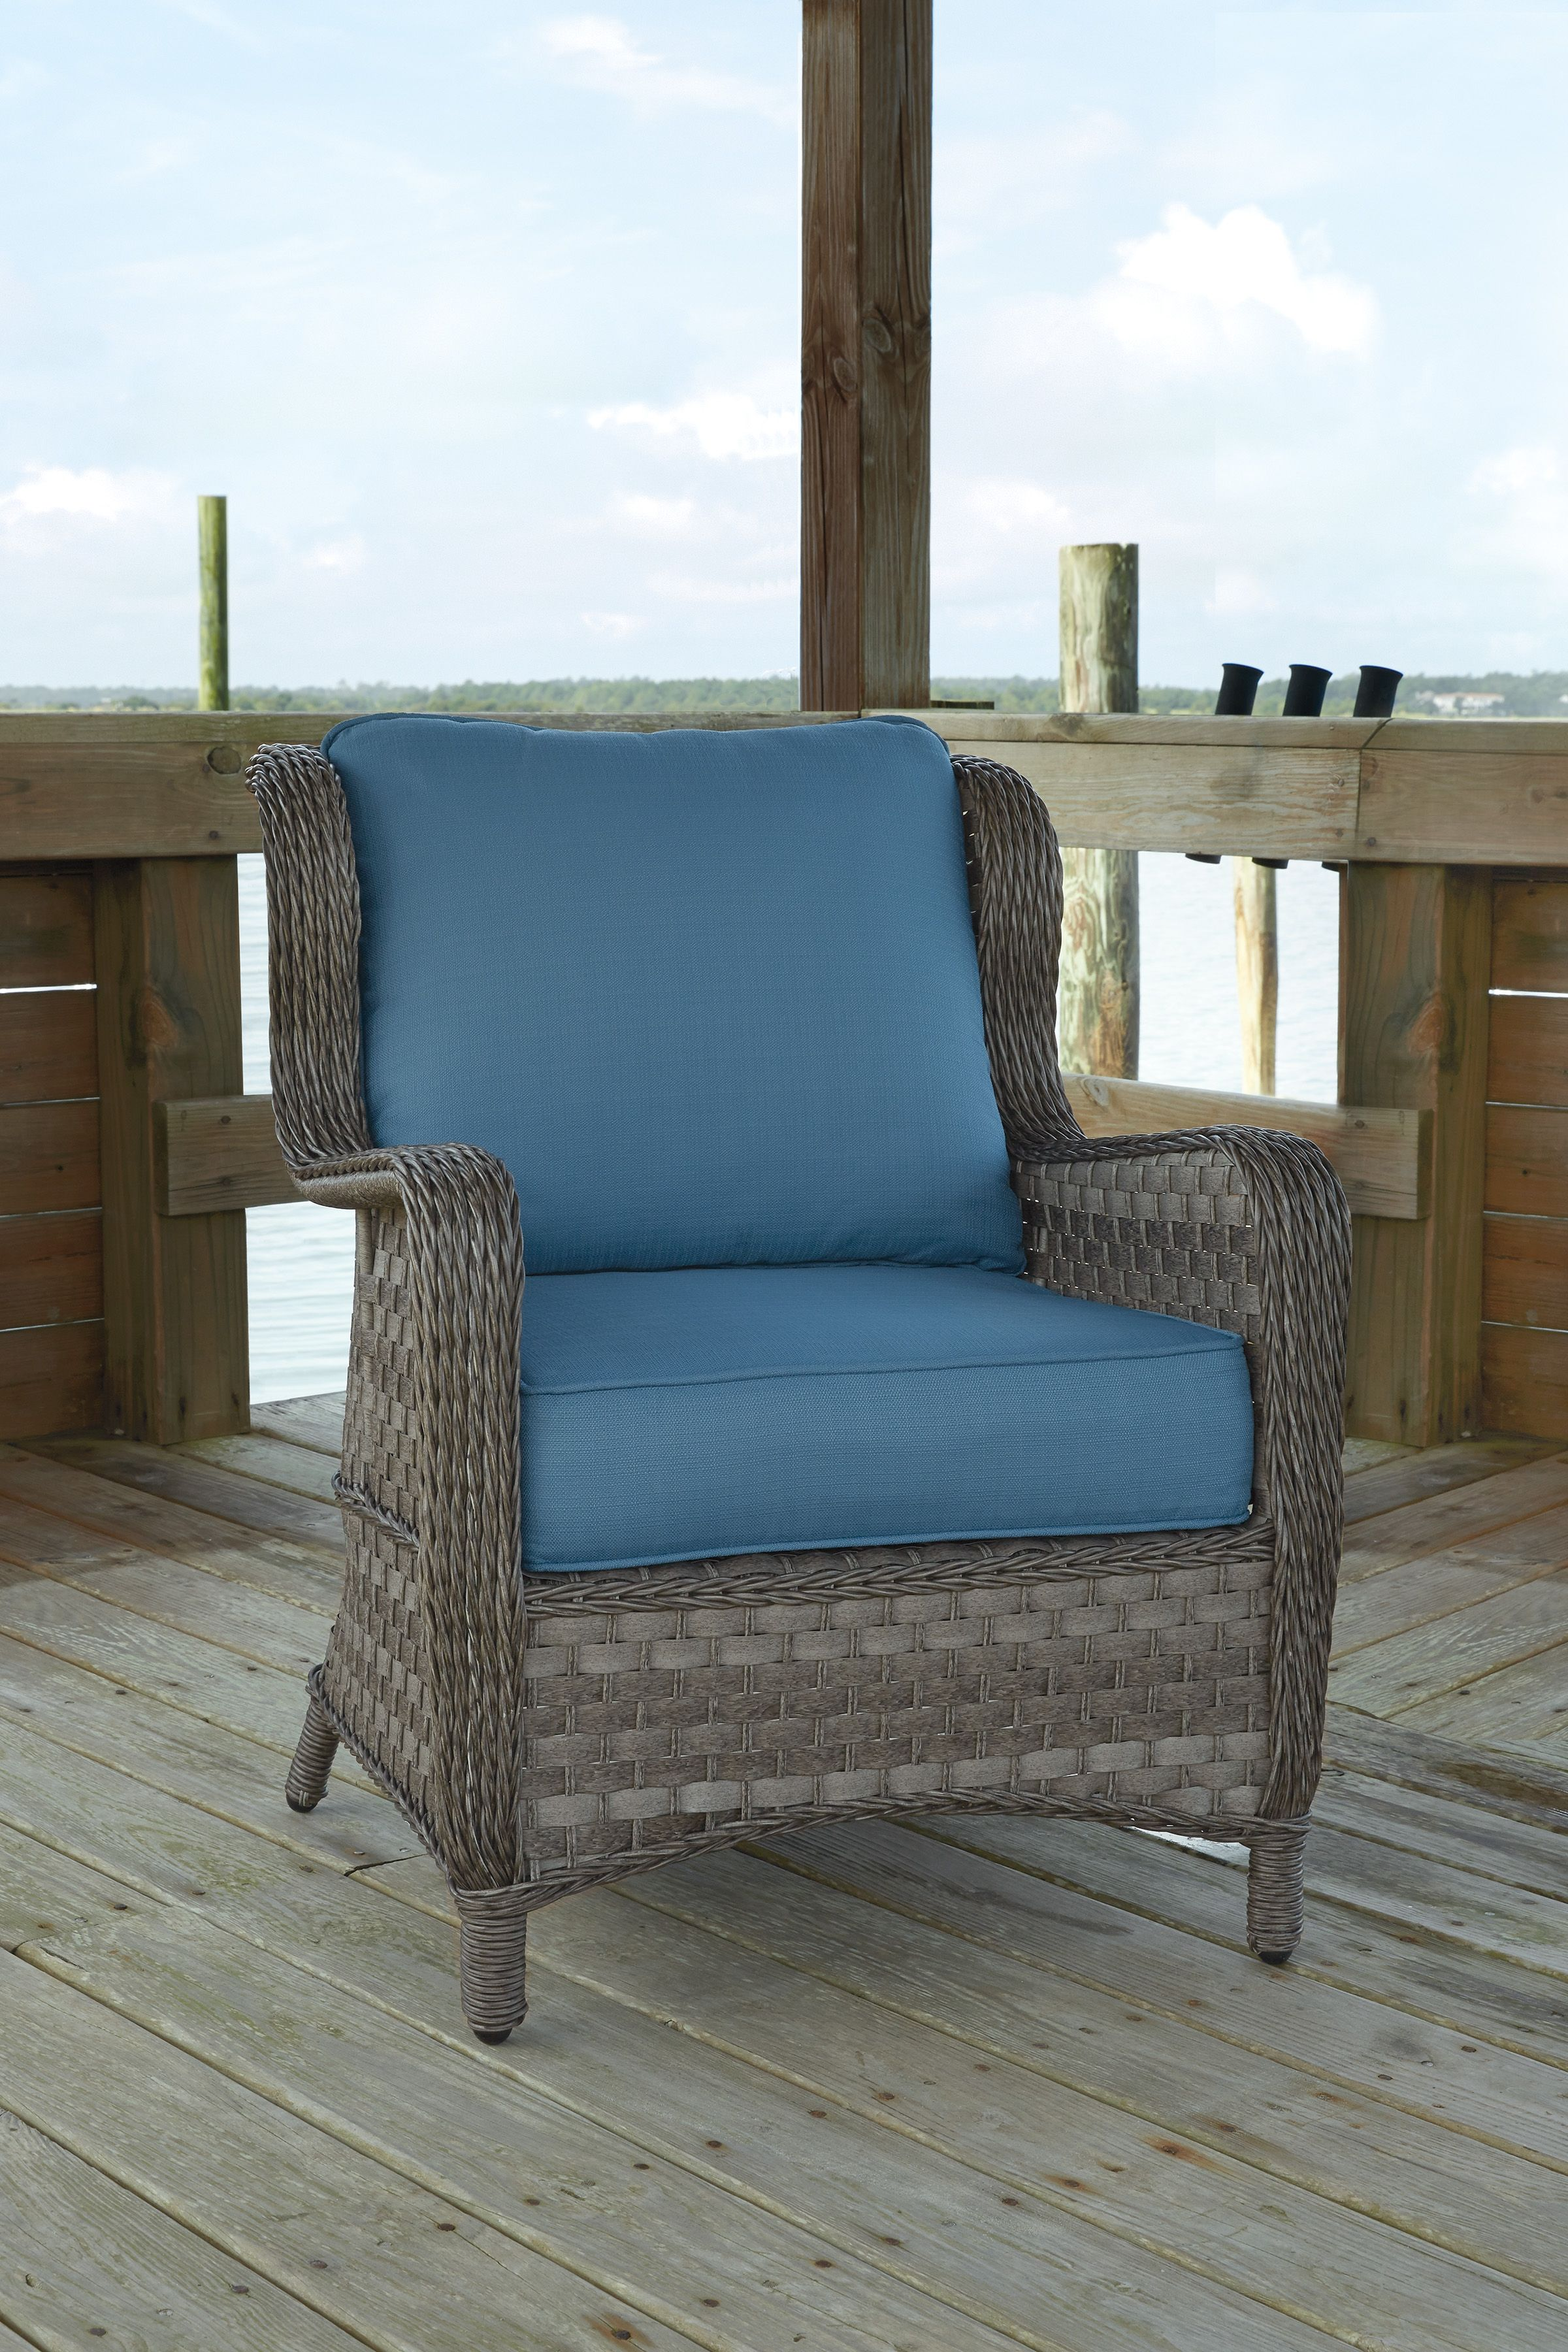 Resin Lounge Chair Ikea Dining Table Chairs 2 Abbots Court Traditional Blue Gray Fabric